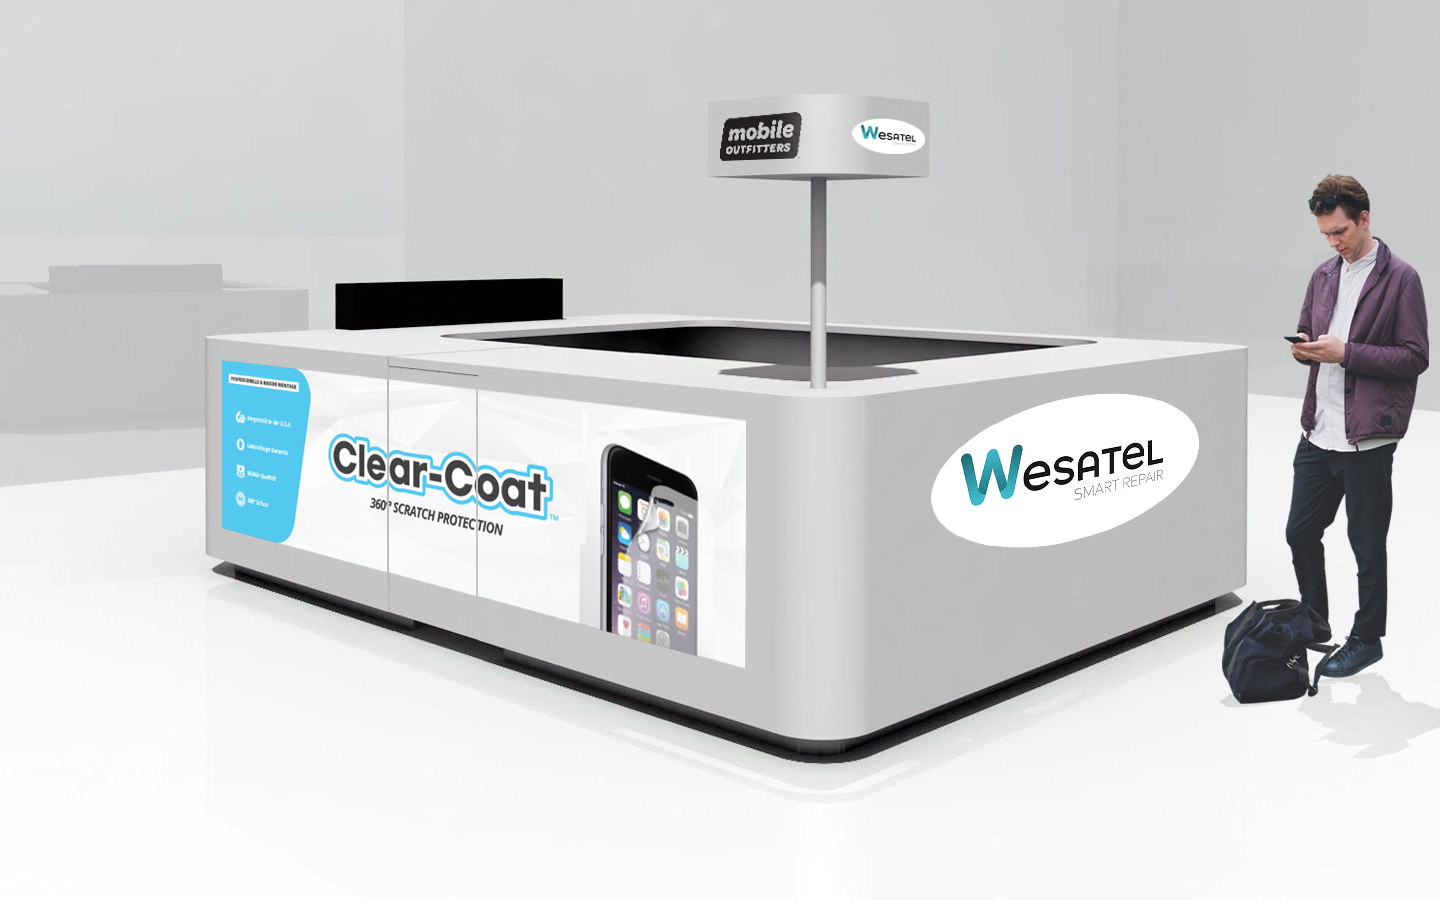 Wesatel und Mobile Outfitters in einem Stand